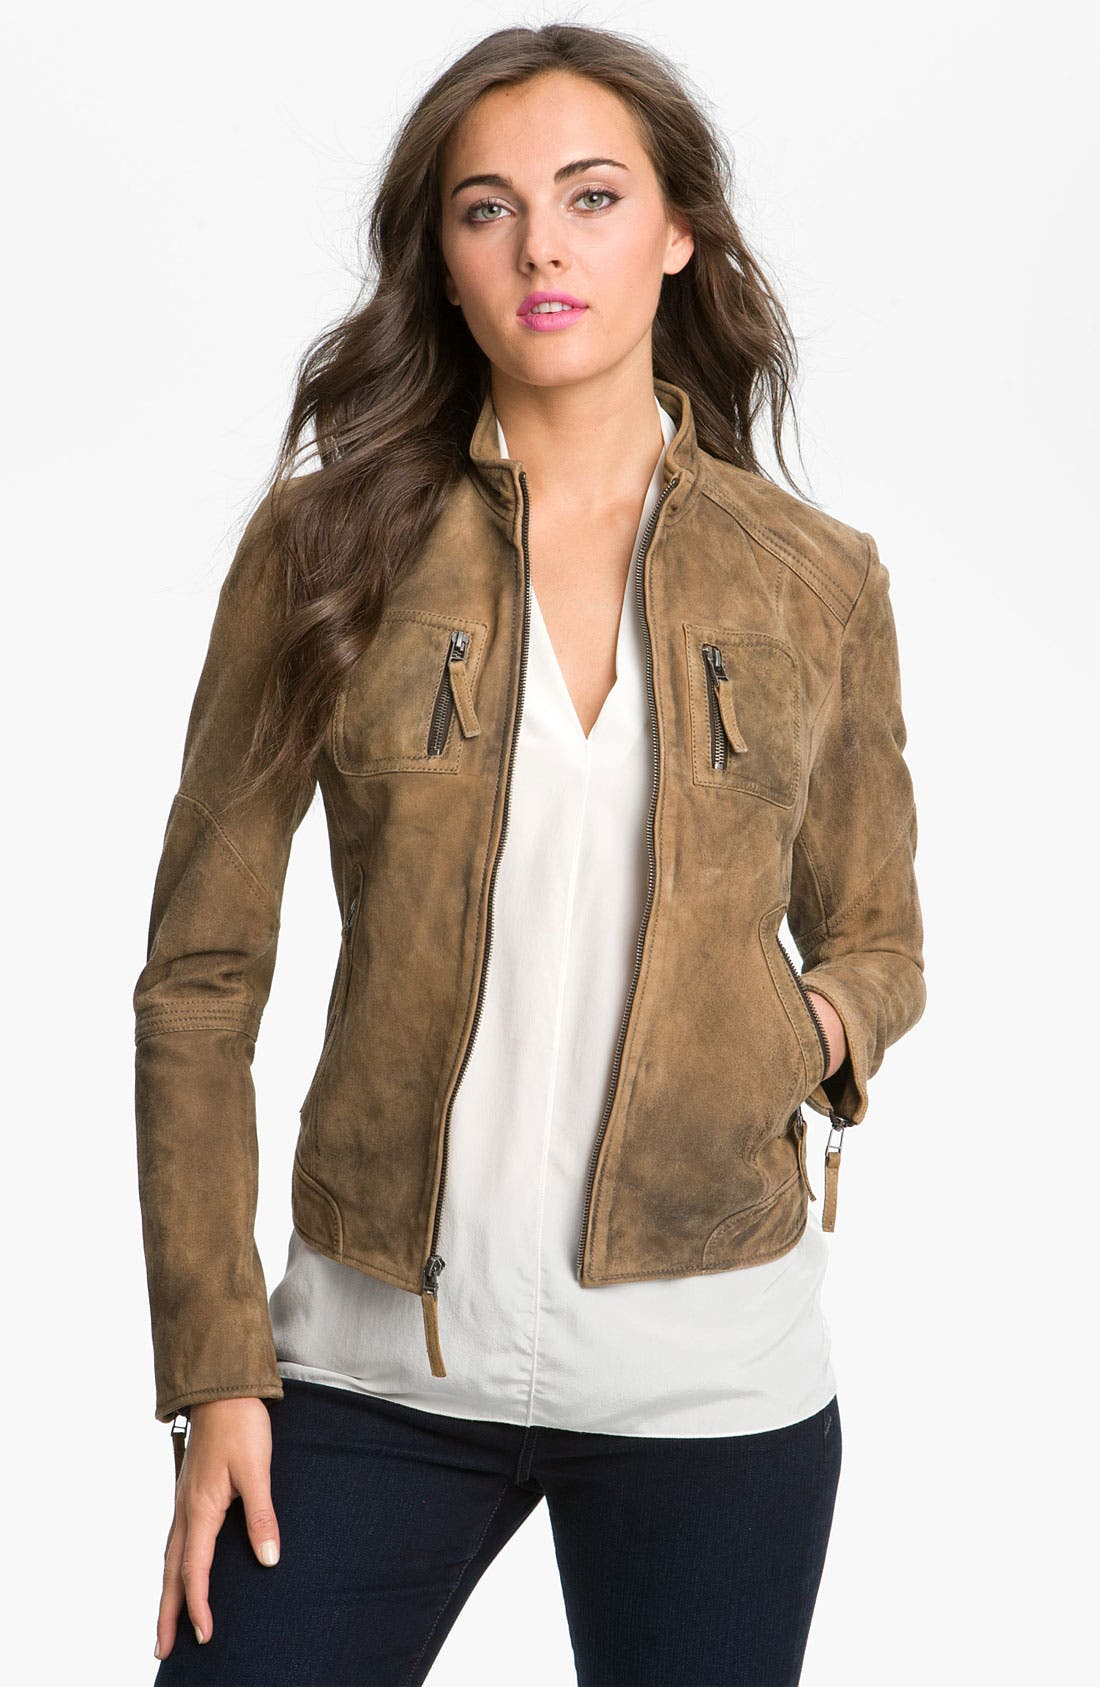 BUFFALO BY DAVID BITTON, Distressed Leather Jacket, Main thumbnail 1, color, 250